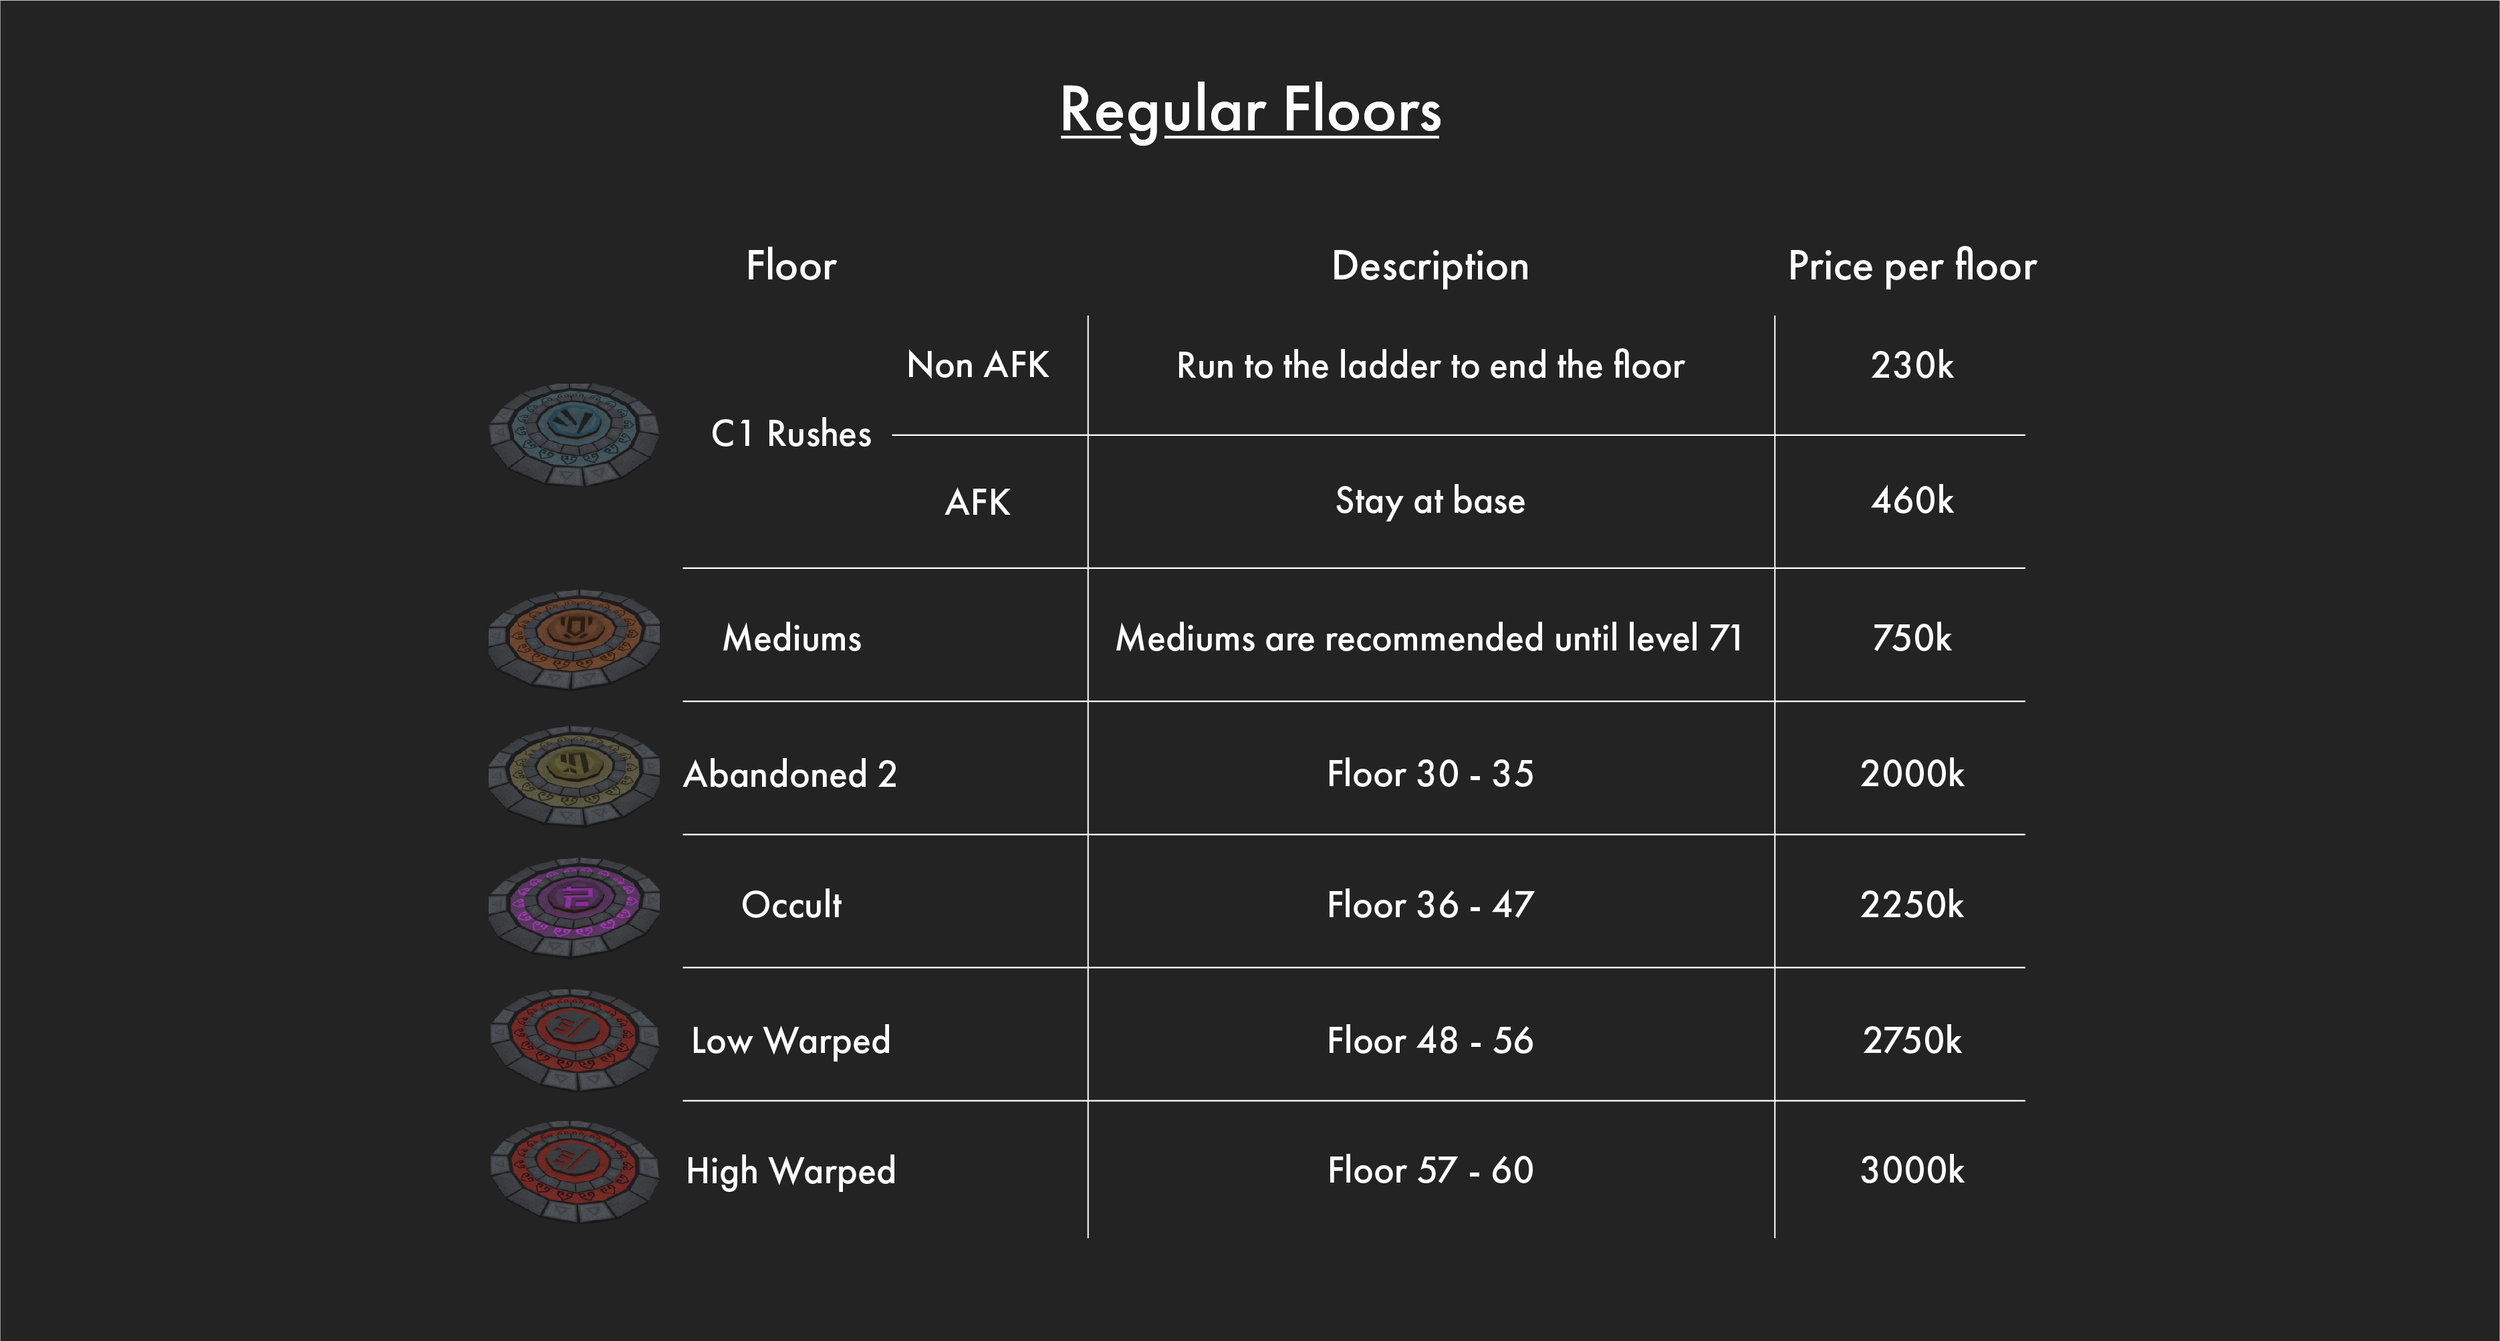 Regular Floor Prices2.jpg